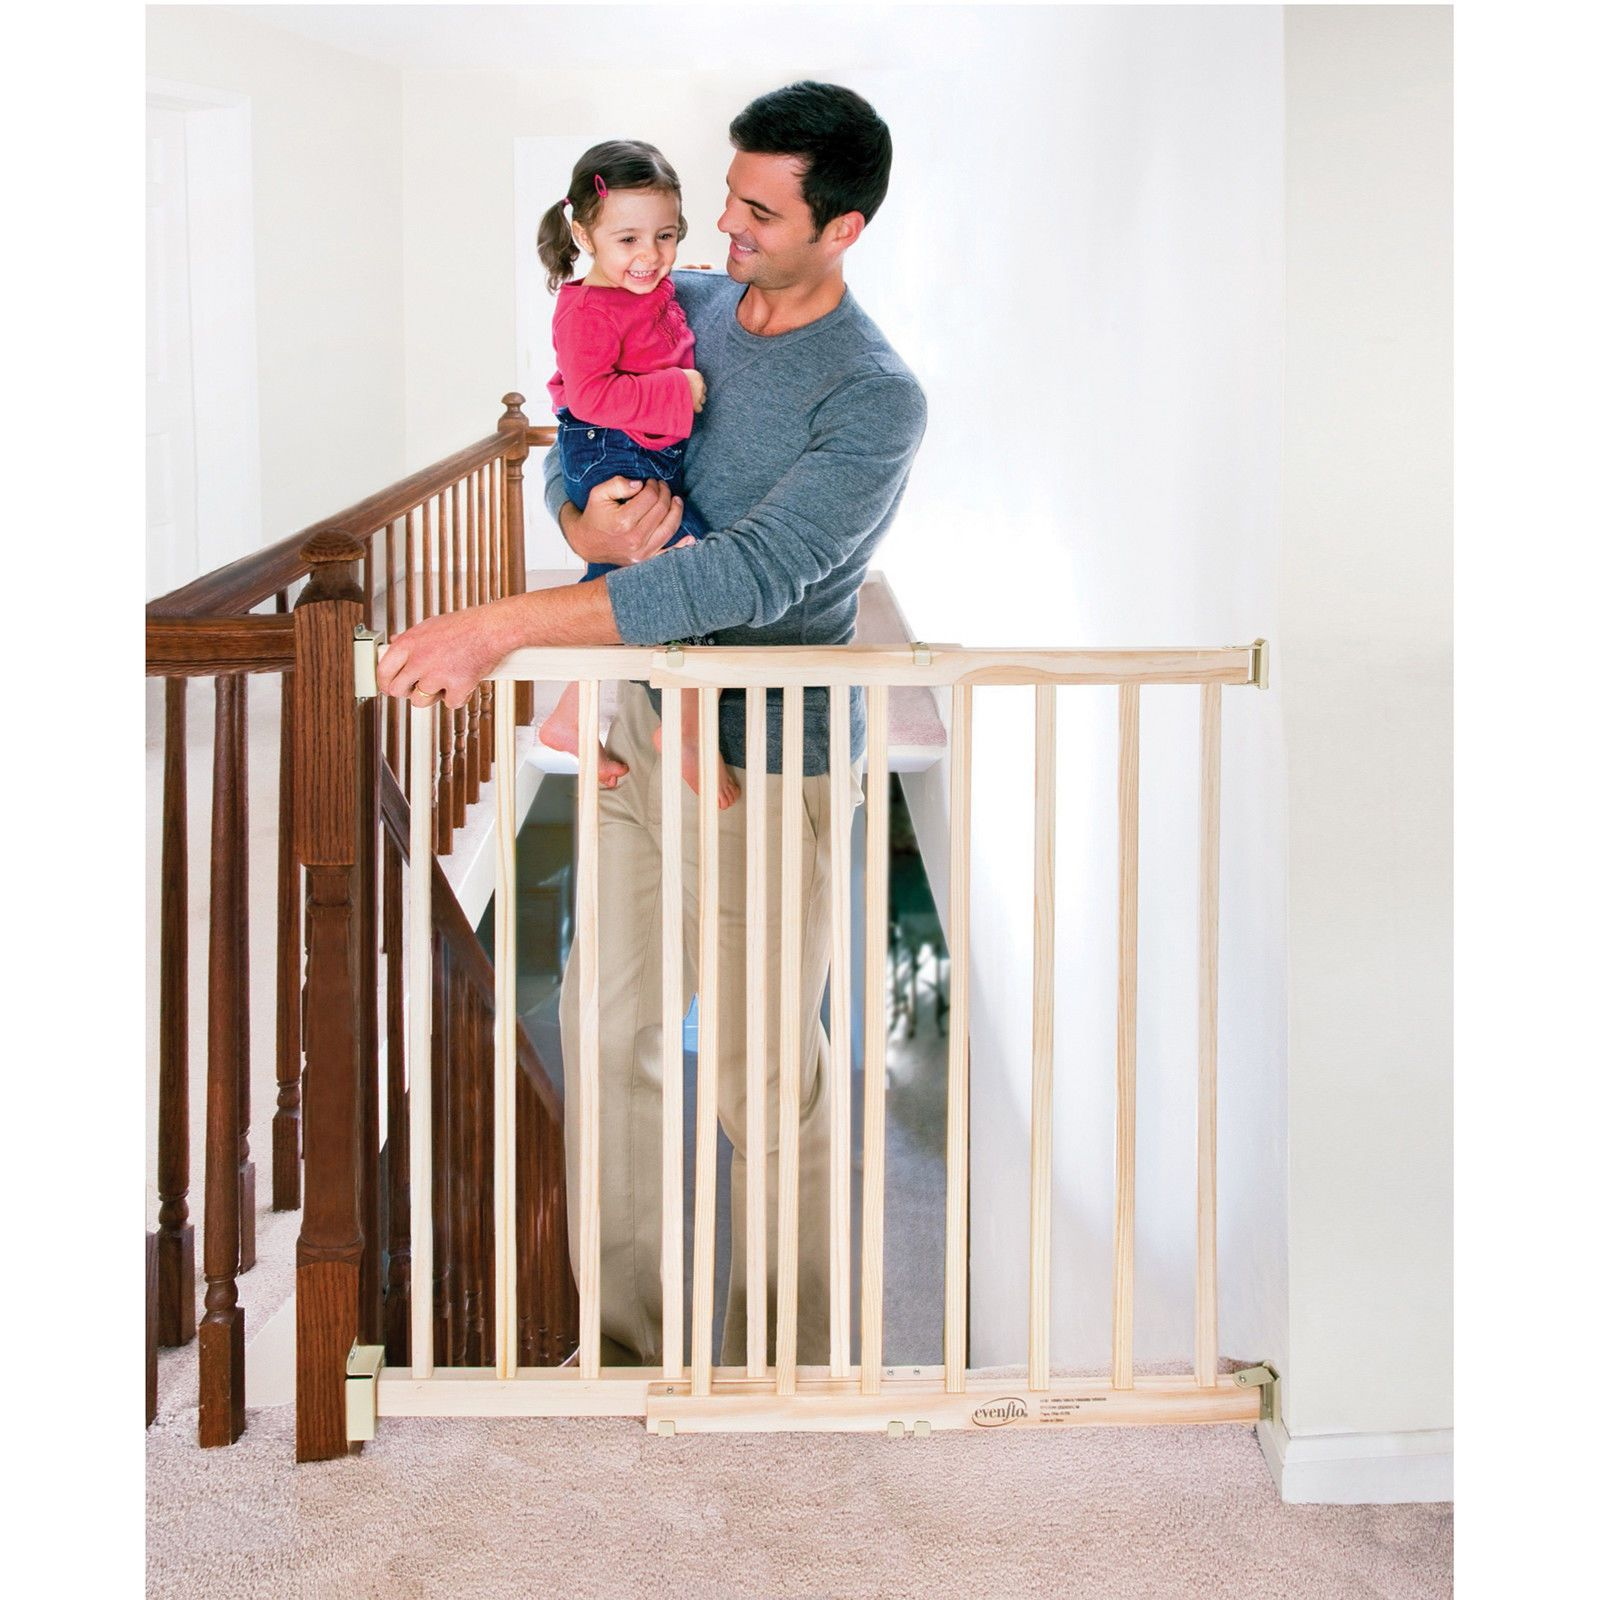 Top of Stair Baby child Infant safety Gate Wood Xtra Tall